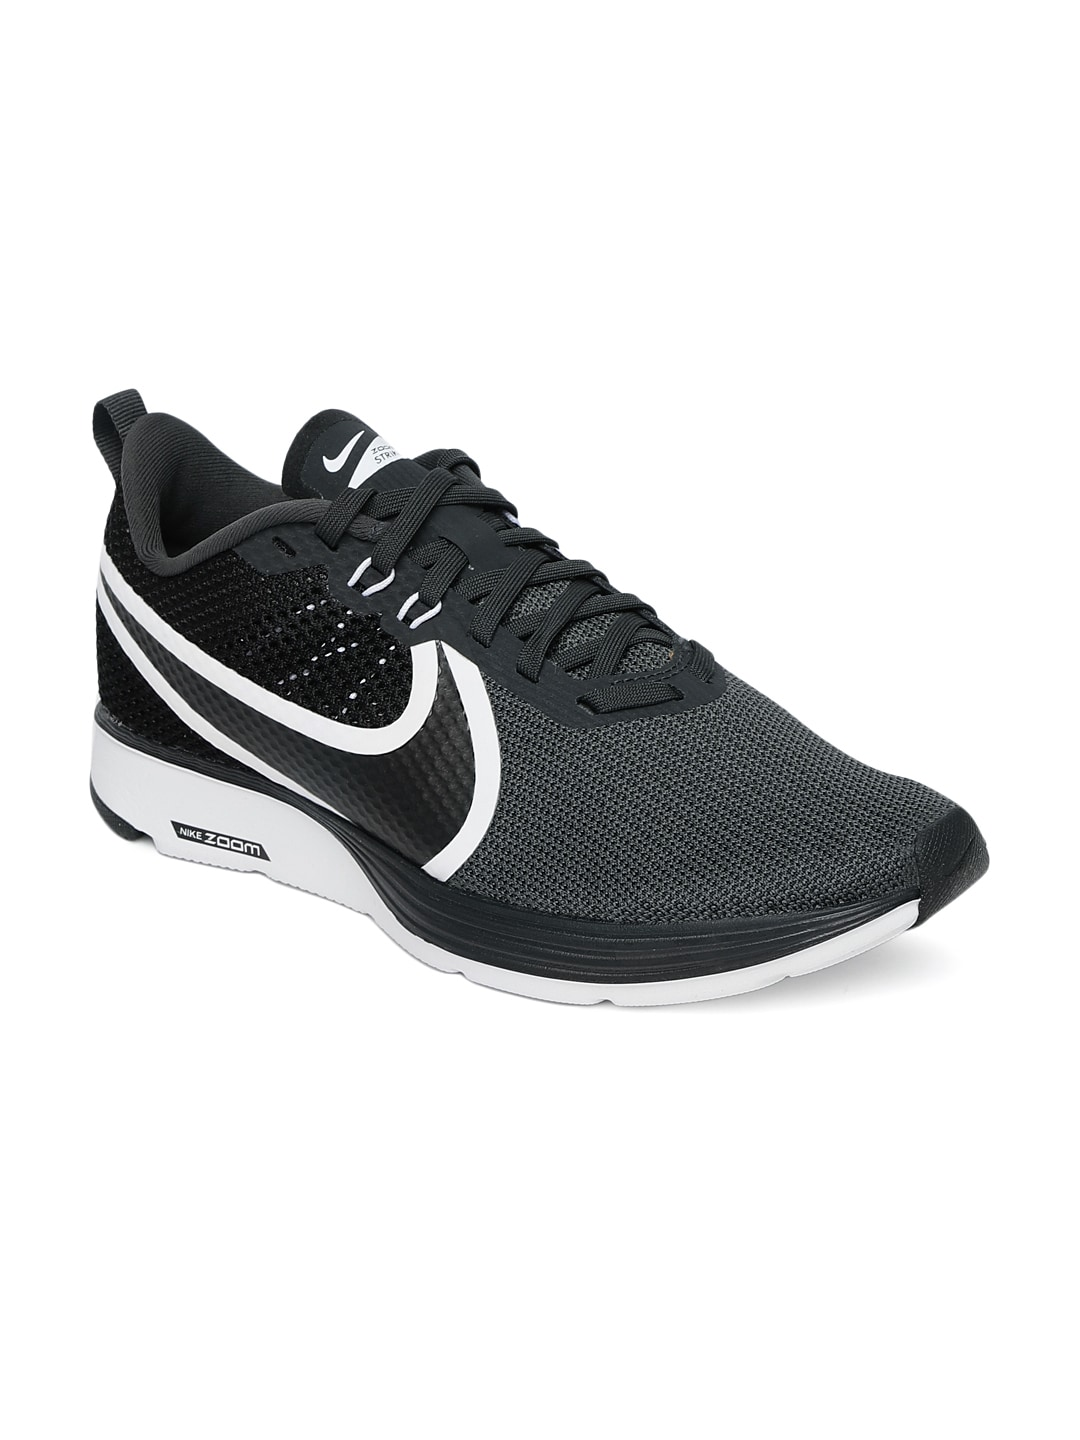 4cbaccf33ca1c Nike Running Shoes - Buy Nike Running Shoes Online